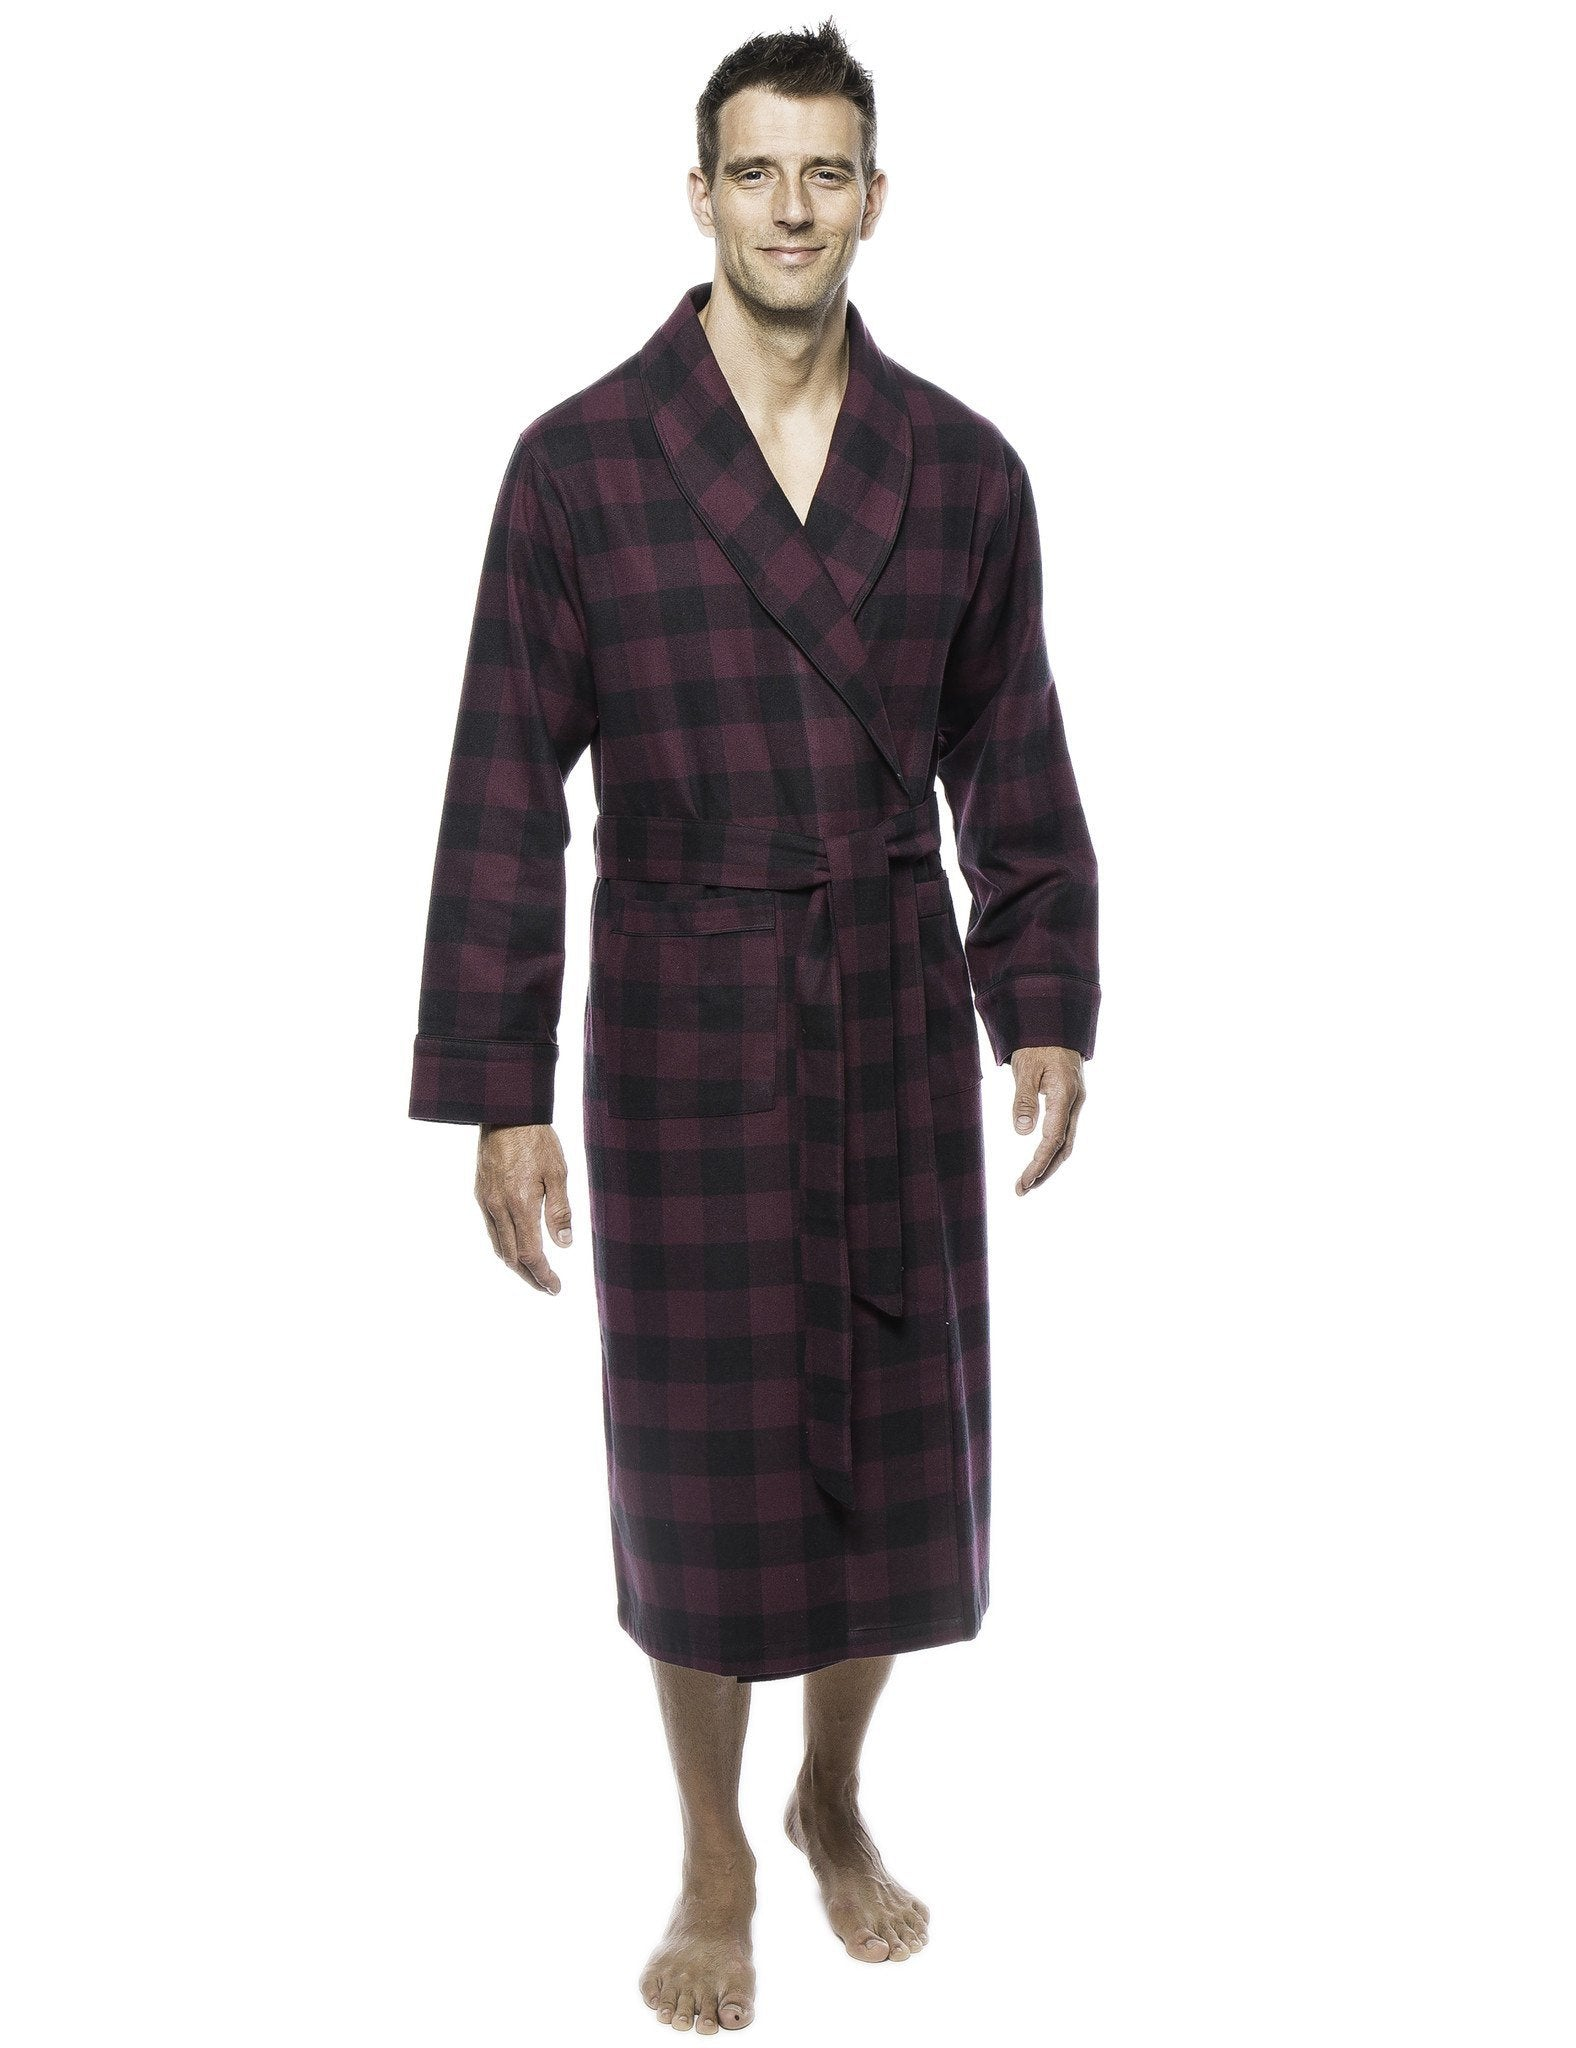 Mens Premium 100% Cotton Flannel Robe - Gingham Fig/Black